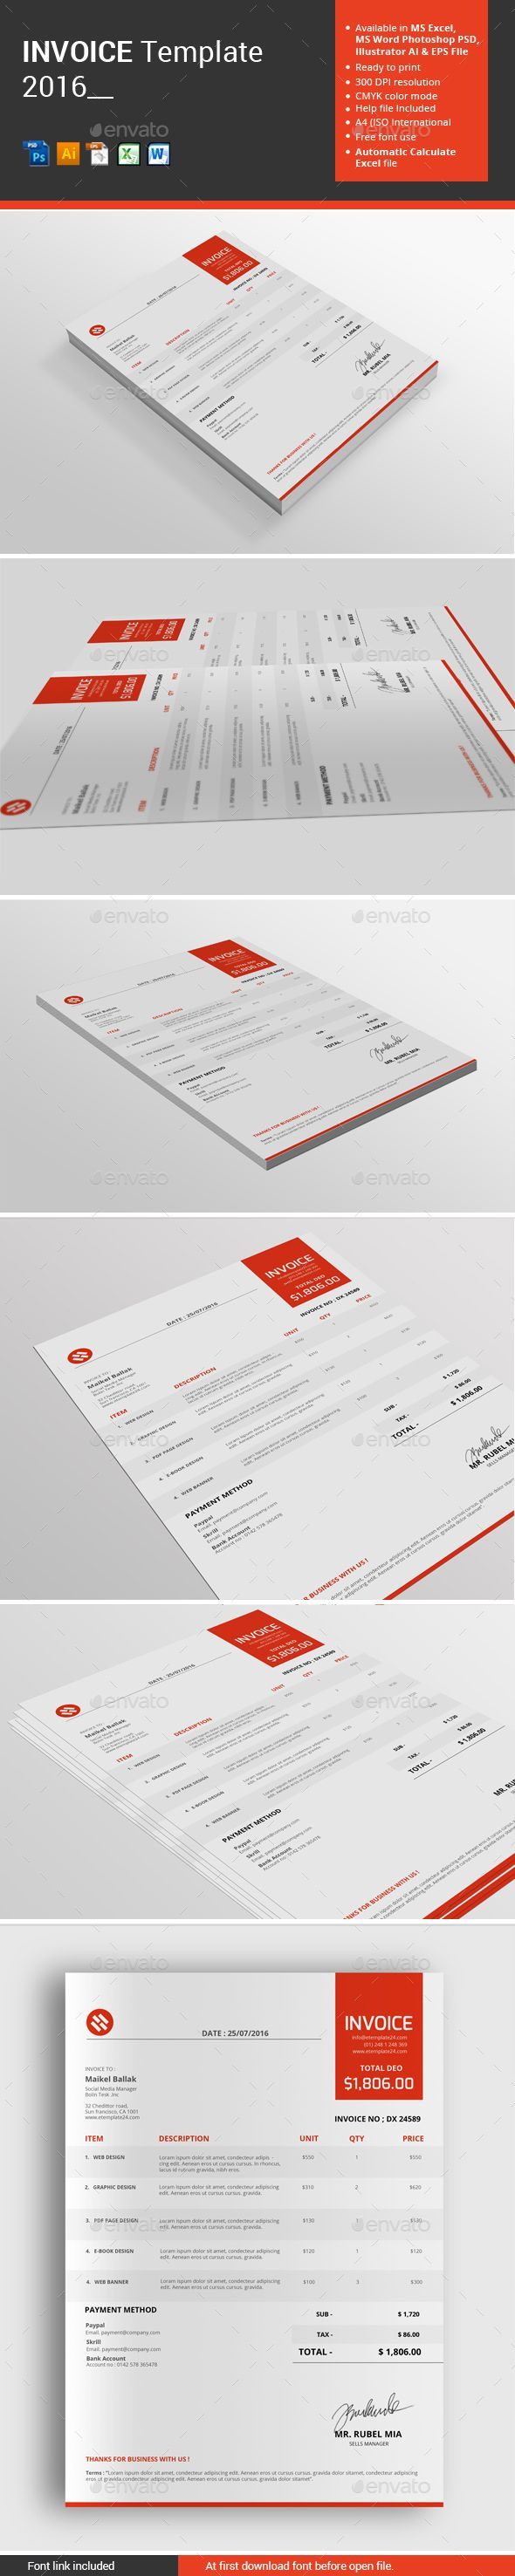 proposal template for word%0A Invoice Template